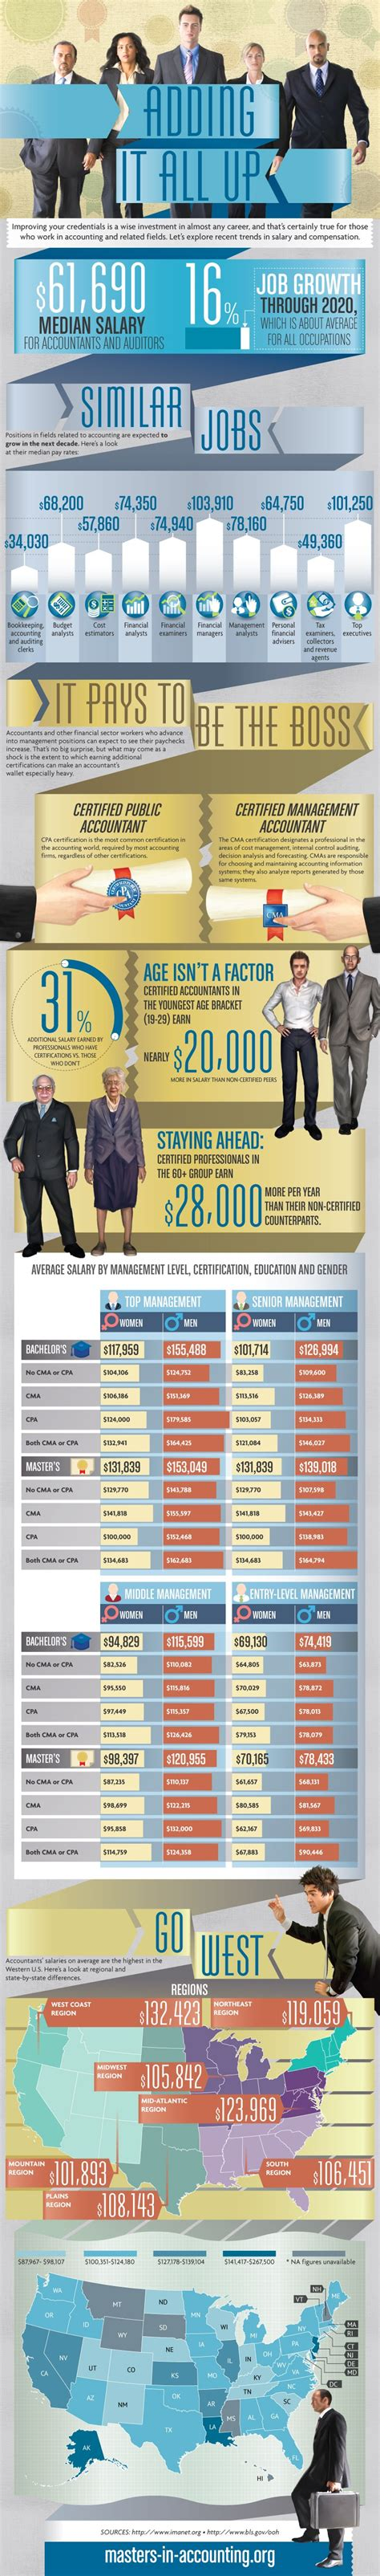 Cpa Cma Mba Salary by Adding It All Up Infographic Only Infographic